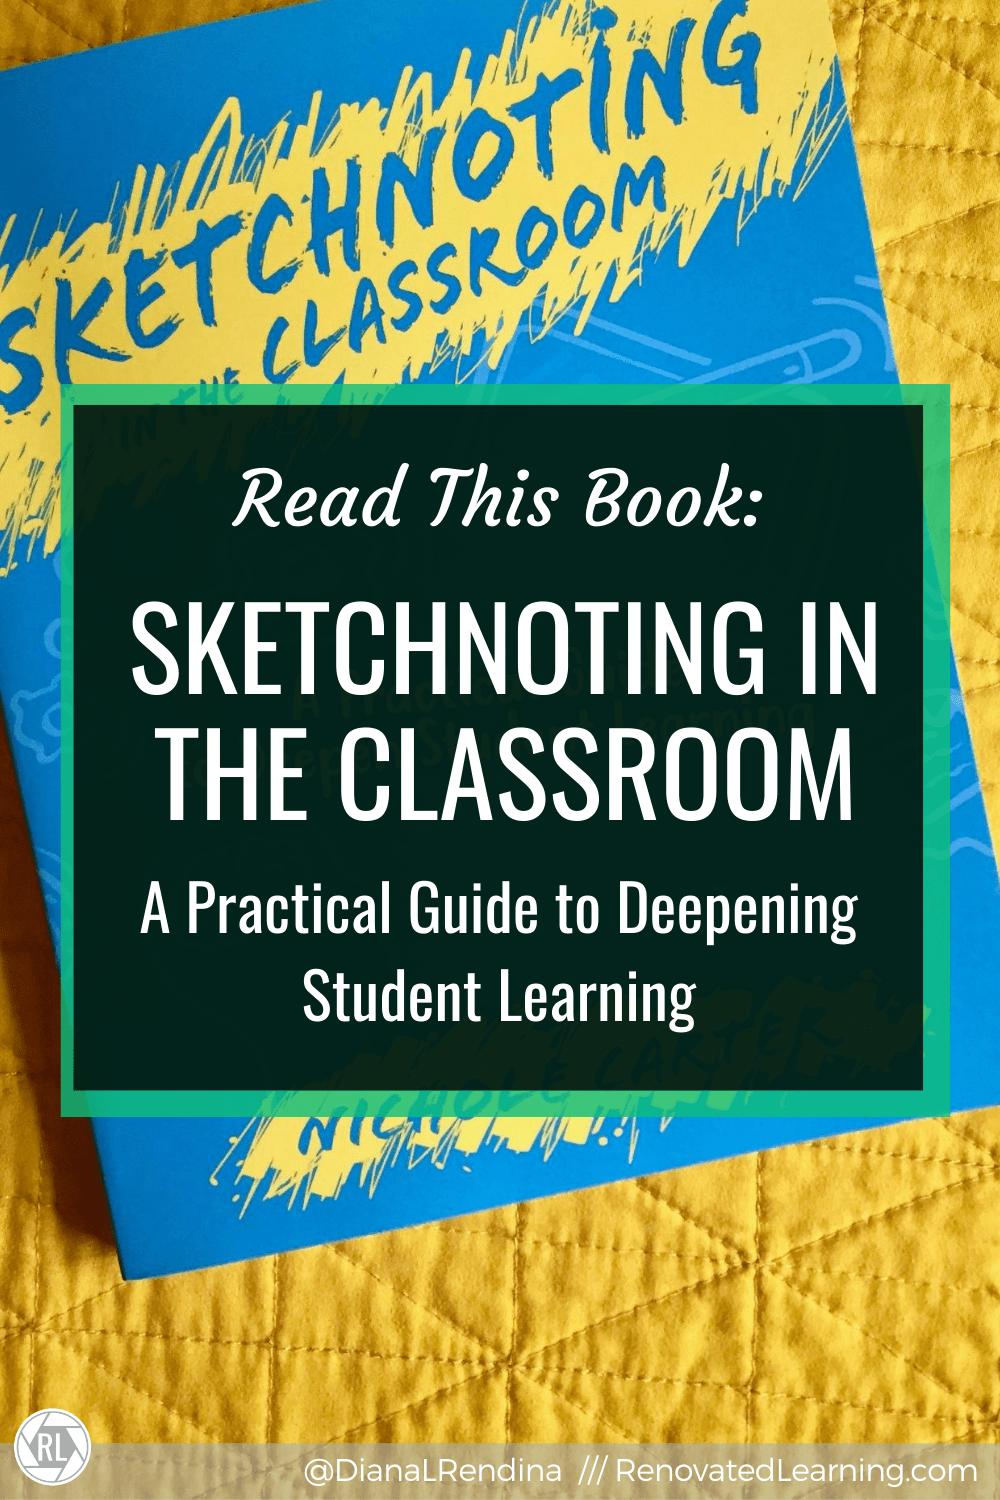 Read this Book: Sketchnoting in the Classroom // Nichole Carter's book is an excellent resource for educators looking to find ways to bring sketchnoting into their classrooms. She provides excellent ideas and examples to get your students started sketching. If you're looking for more of a basic how-to sketchnote, start with Mike Rhode's The Sketchnote Handbook.